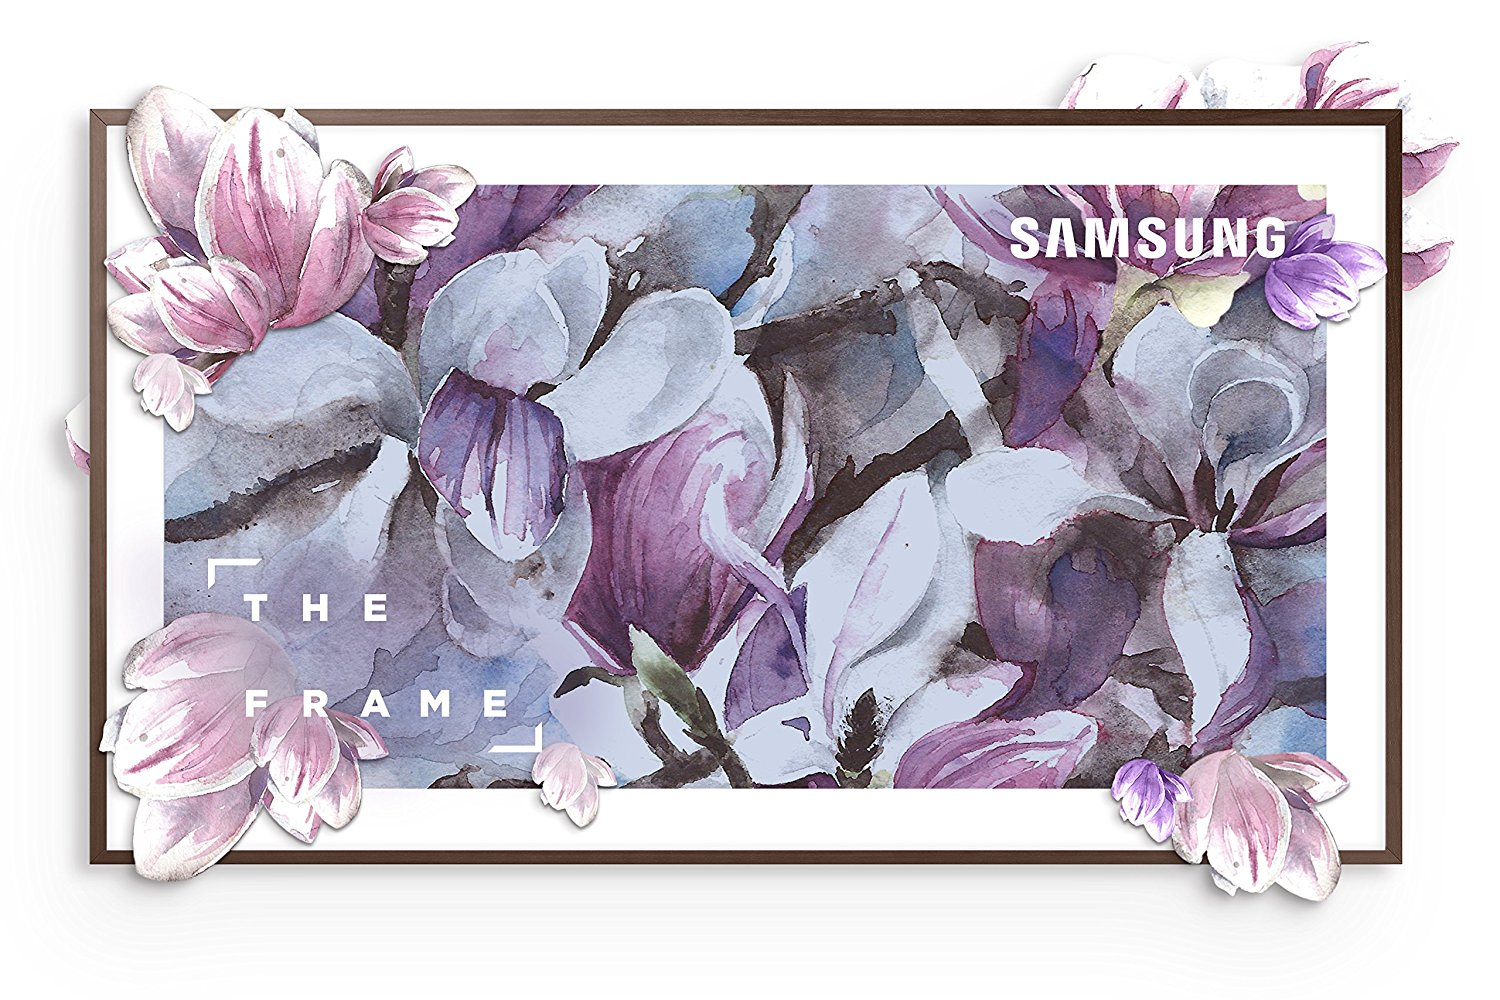 An image related to Samsung UN55LS003AFXZA 55-Inch HDR Flat Screen 4K LED 240Hz TV with Samsung Motion Rate 240